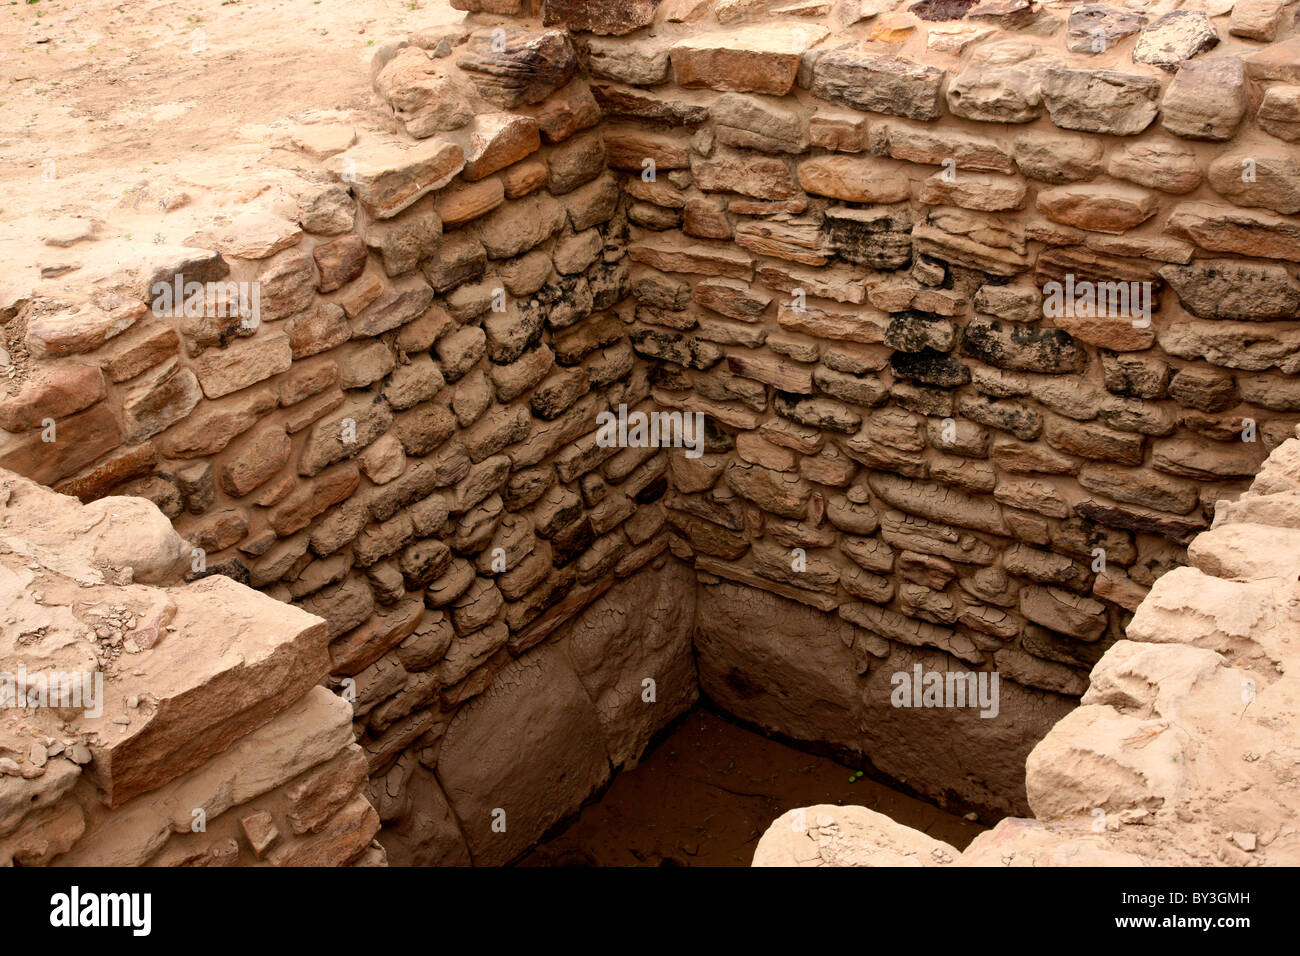 harappan civilisaton By 2,500 bce the indus-sarasvati or harappan civilization became the largest civilization of the ancient world with a population of over 5 million people.